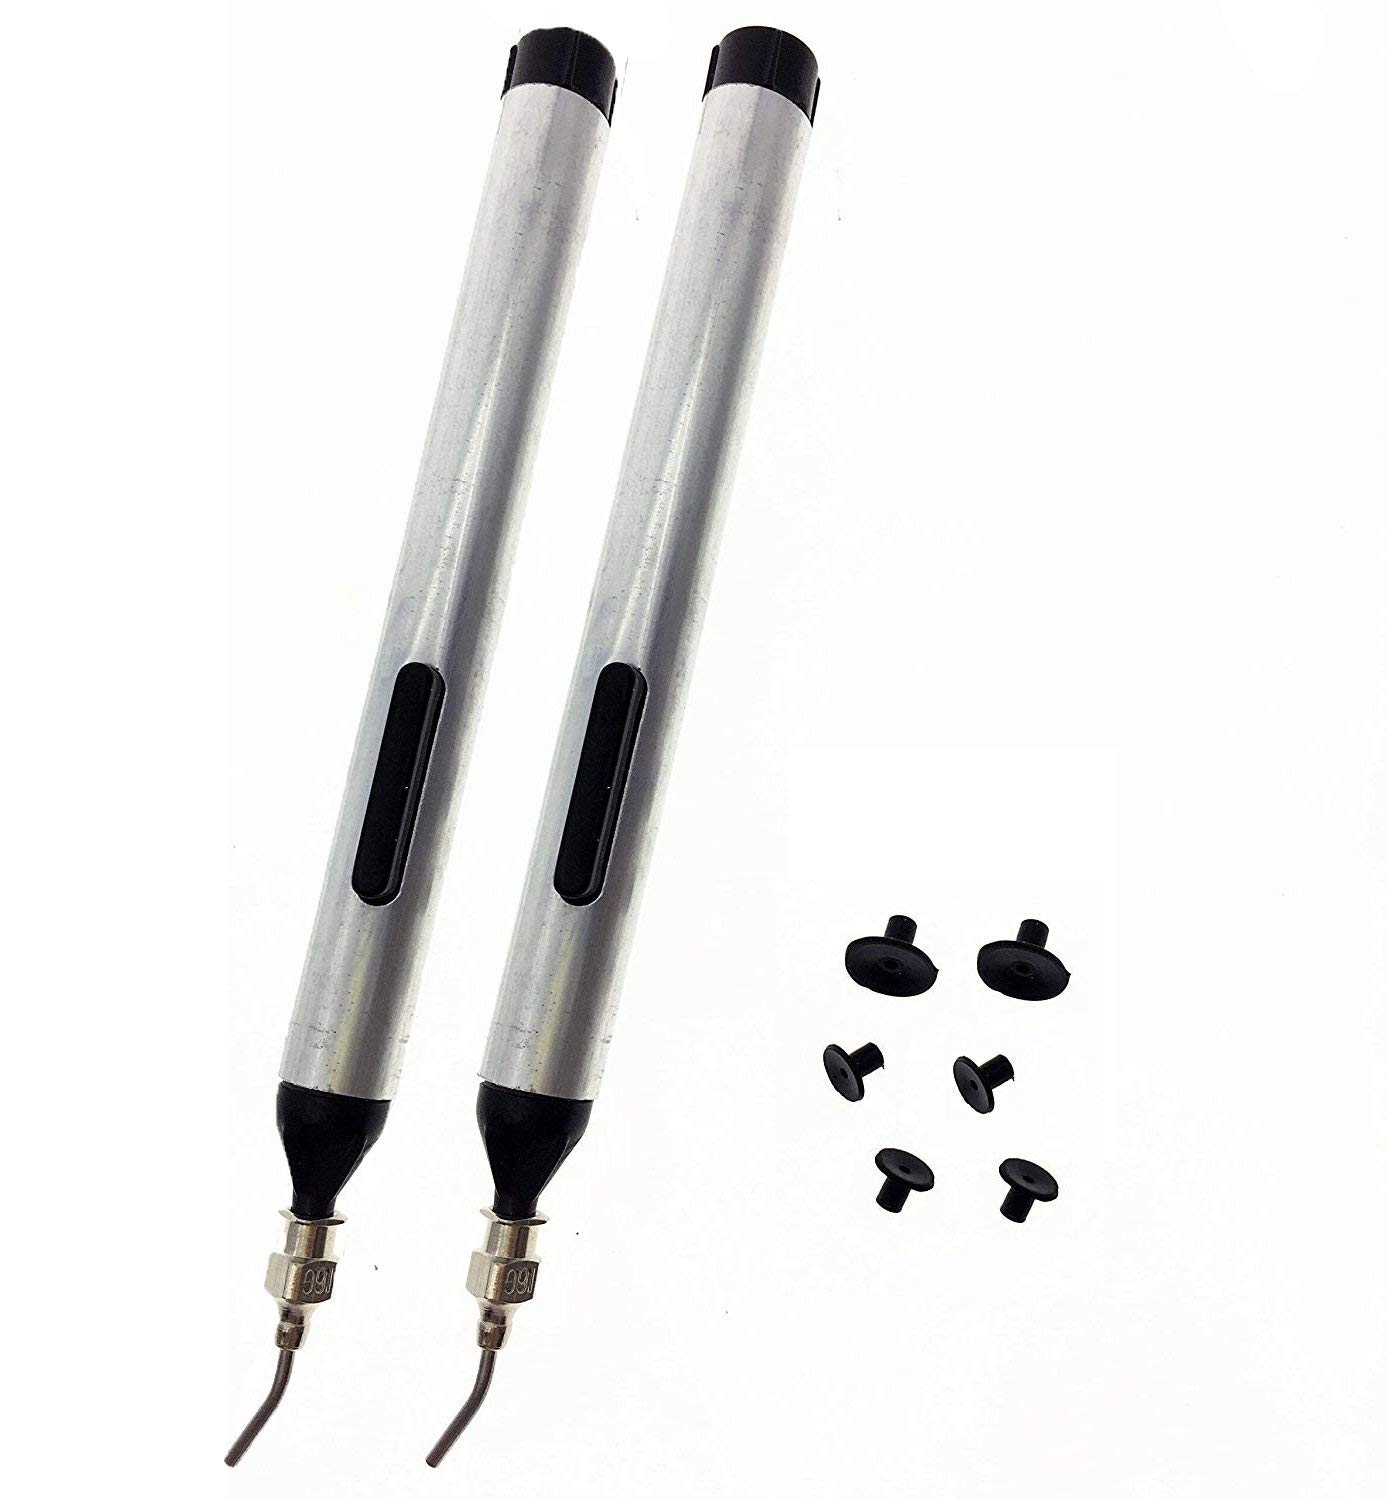 YXQ IC SMD Pick Place Vacuum Sucking Pen Picker Up Hand Tool with Suction headers(2Pcs)